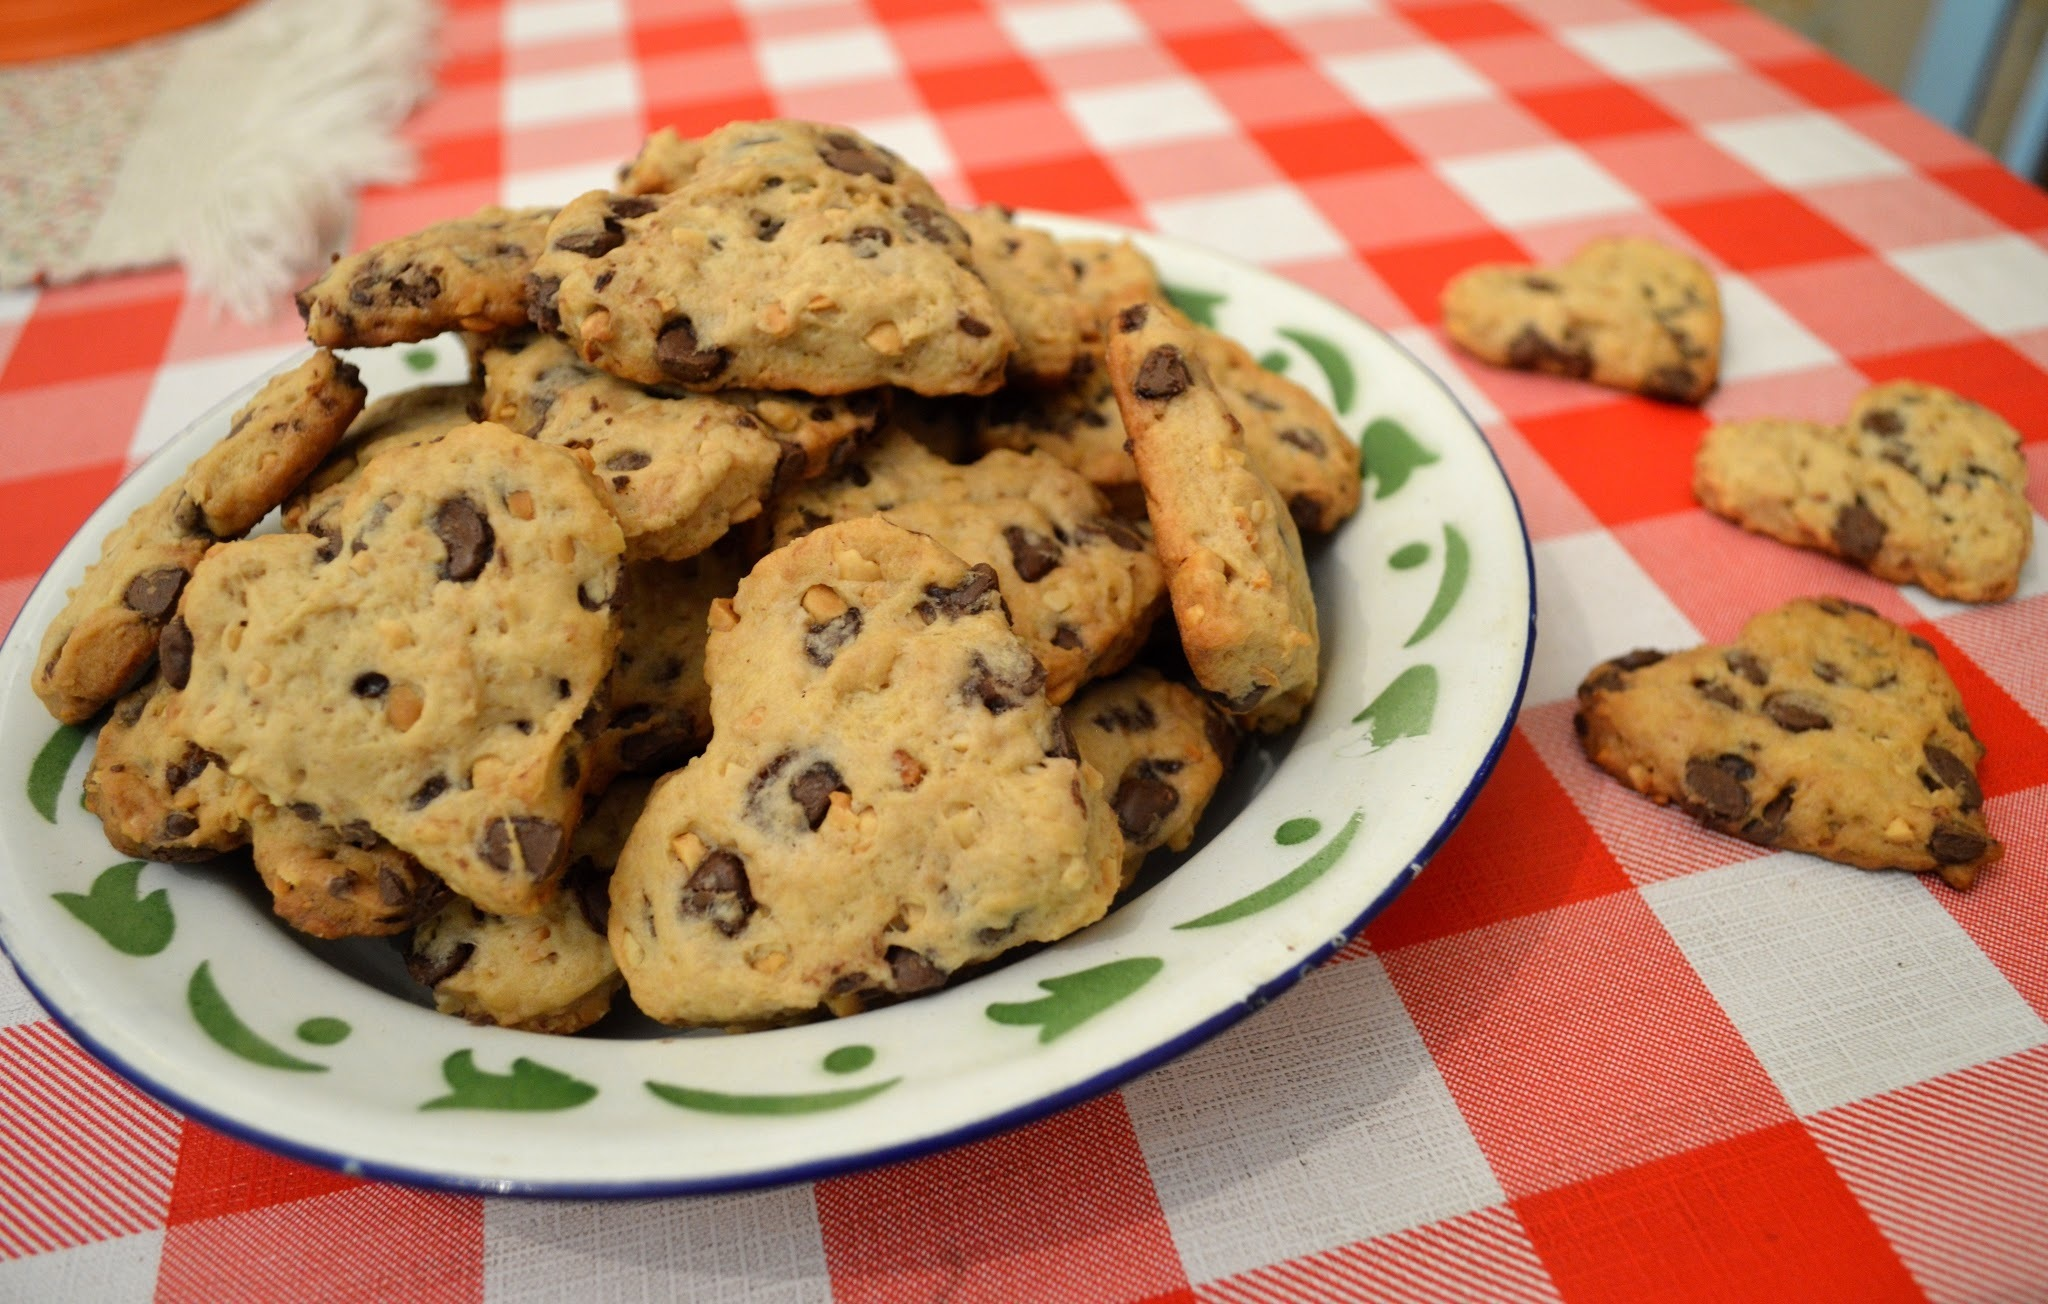 Cookies de amendoim com gotas de chocolate